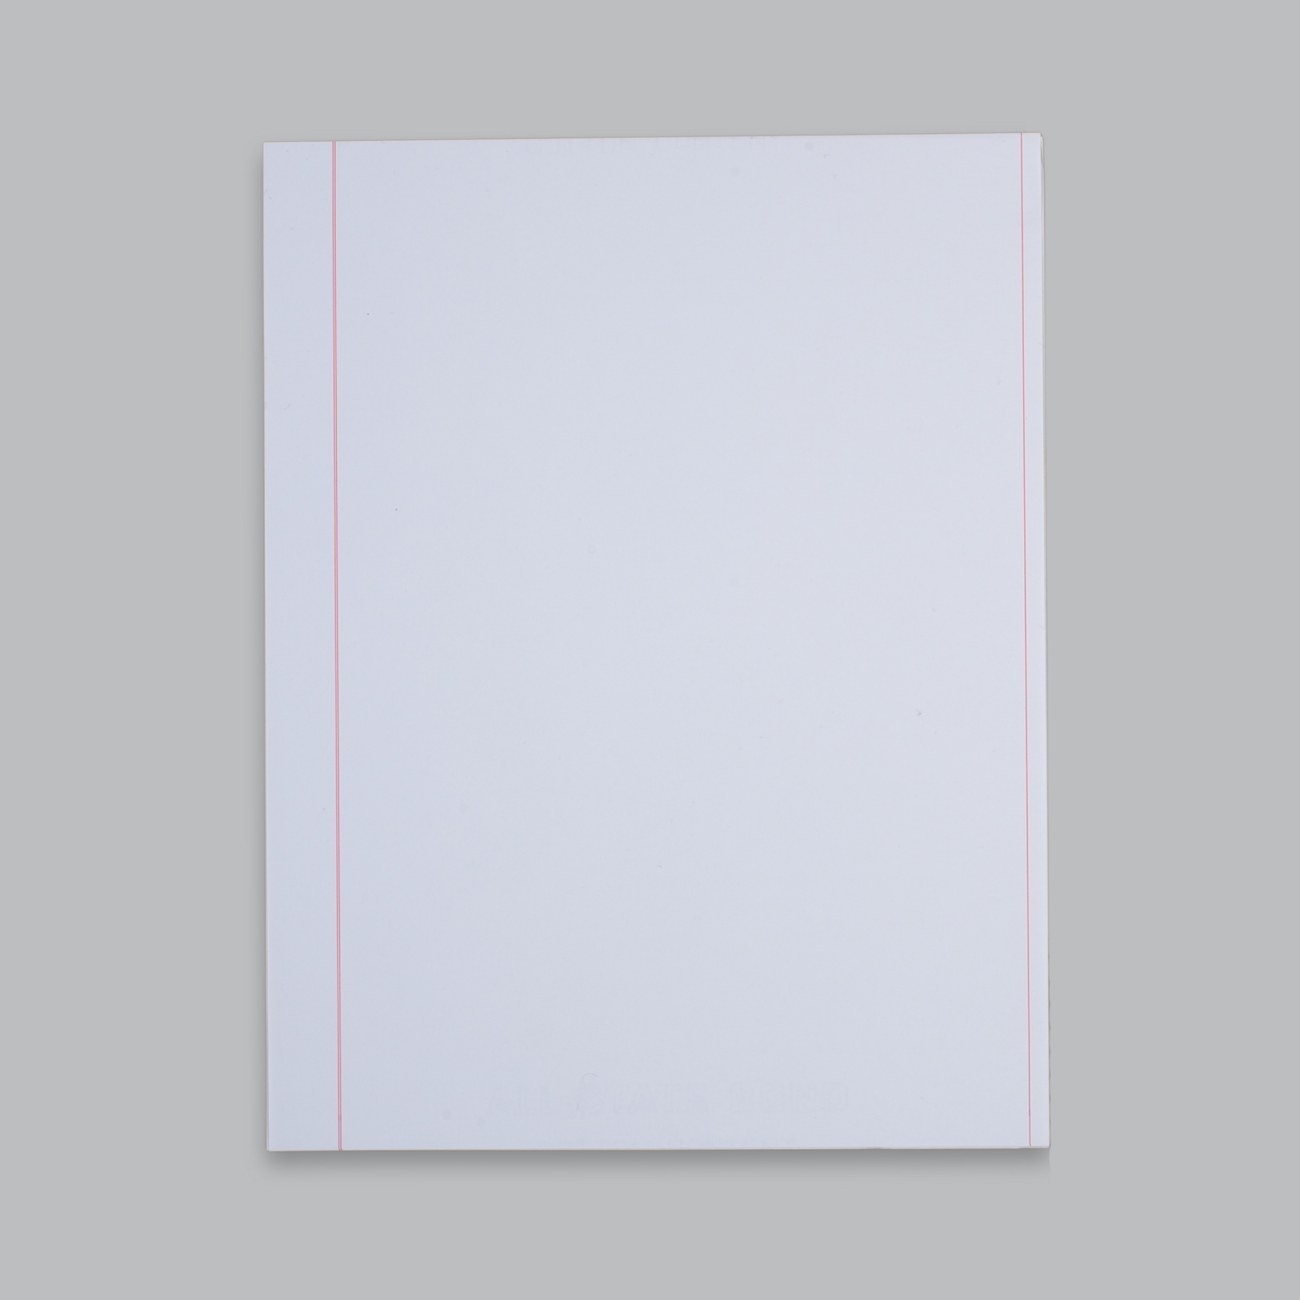 "ALL-STATE Bond Ruled Paper 8 1/2"" x 11"", Red Standard Ruled, Bright White, 20 lb. ALL-STATE Bond Paper, Recycled, 30% PCW, 500/RM"